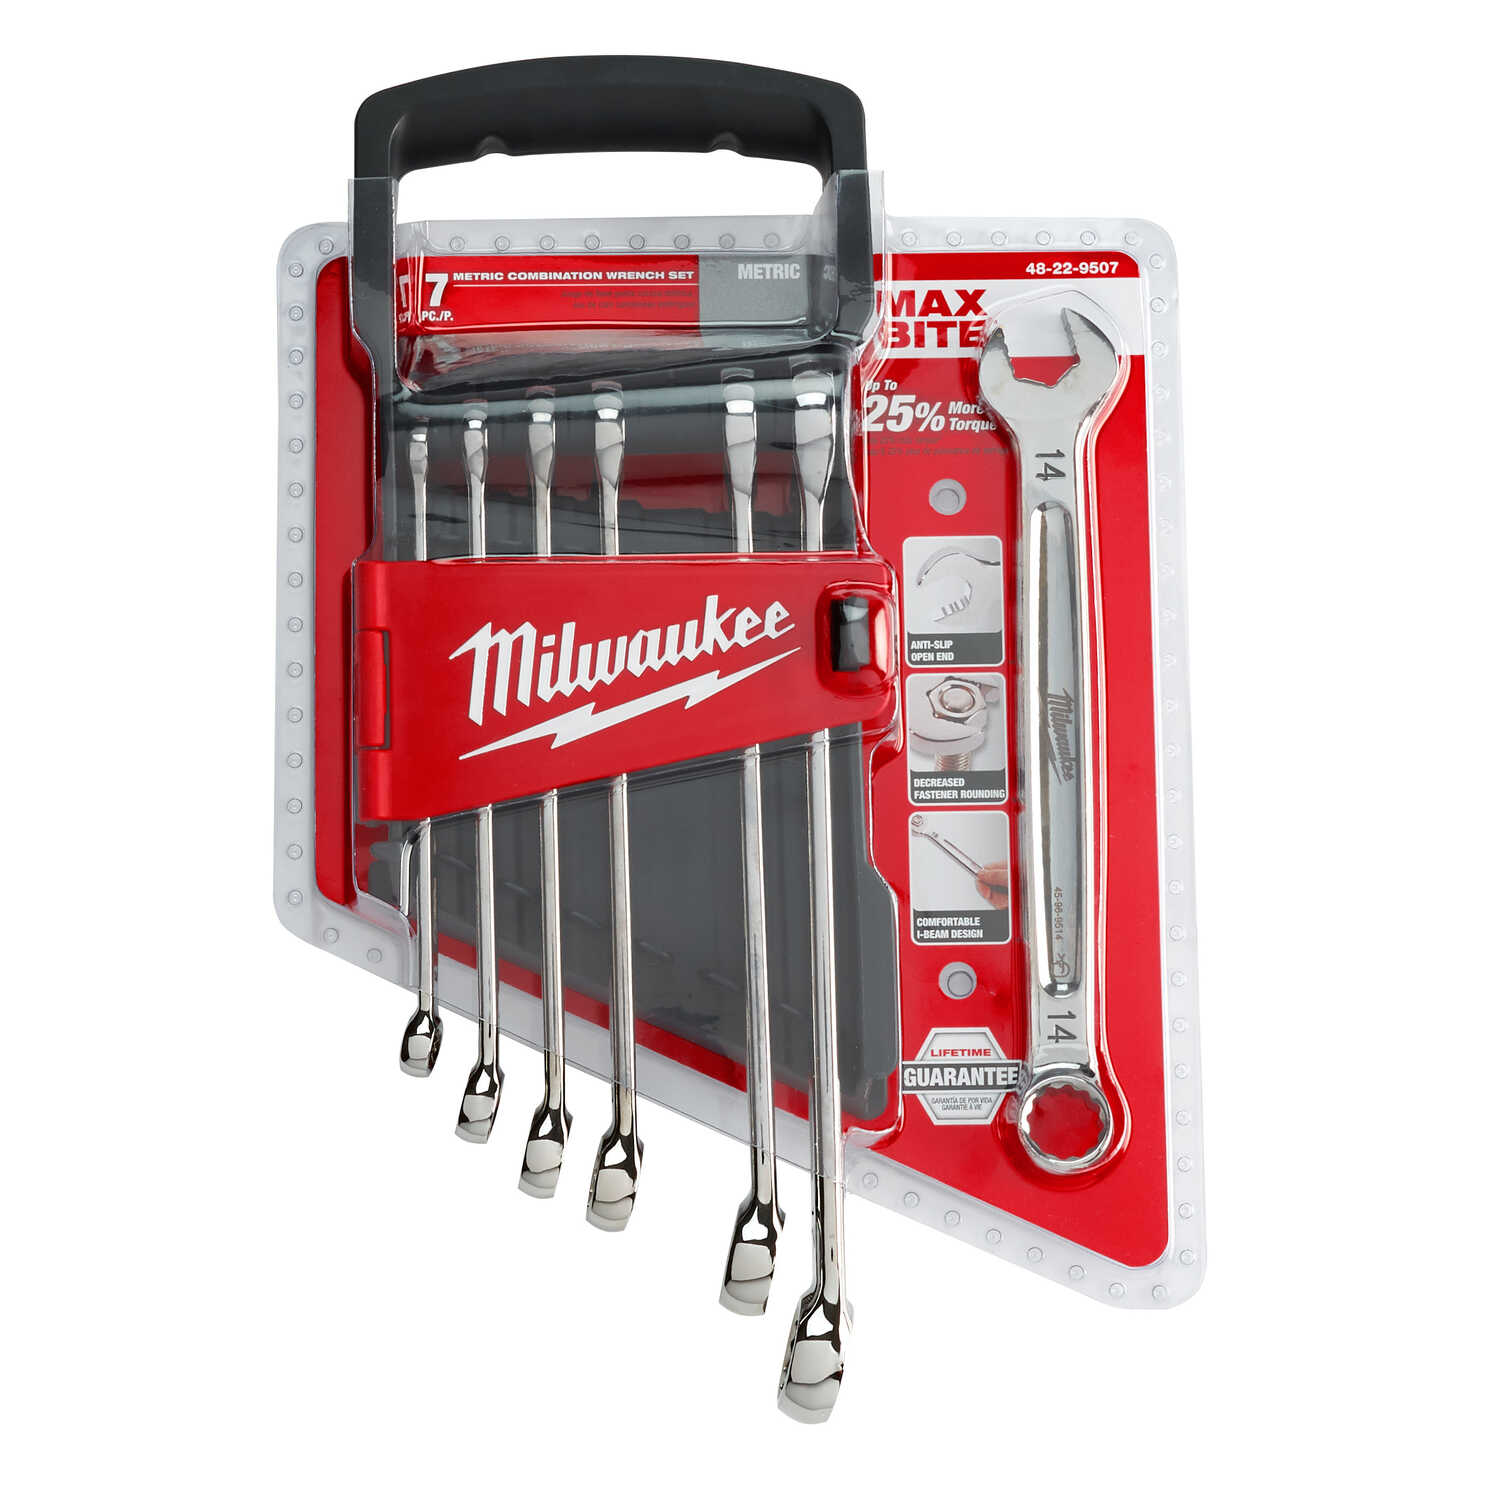 Milwaukee  MAX BITE  Assorted   Metric  Combination  Wrench Set  7 pc.